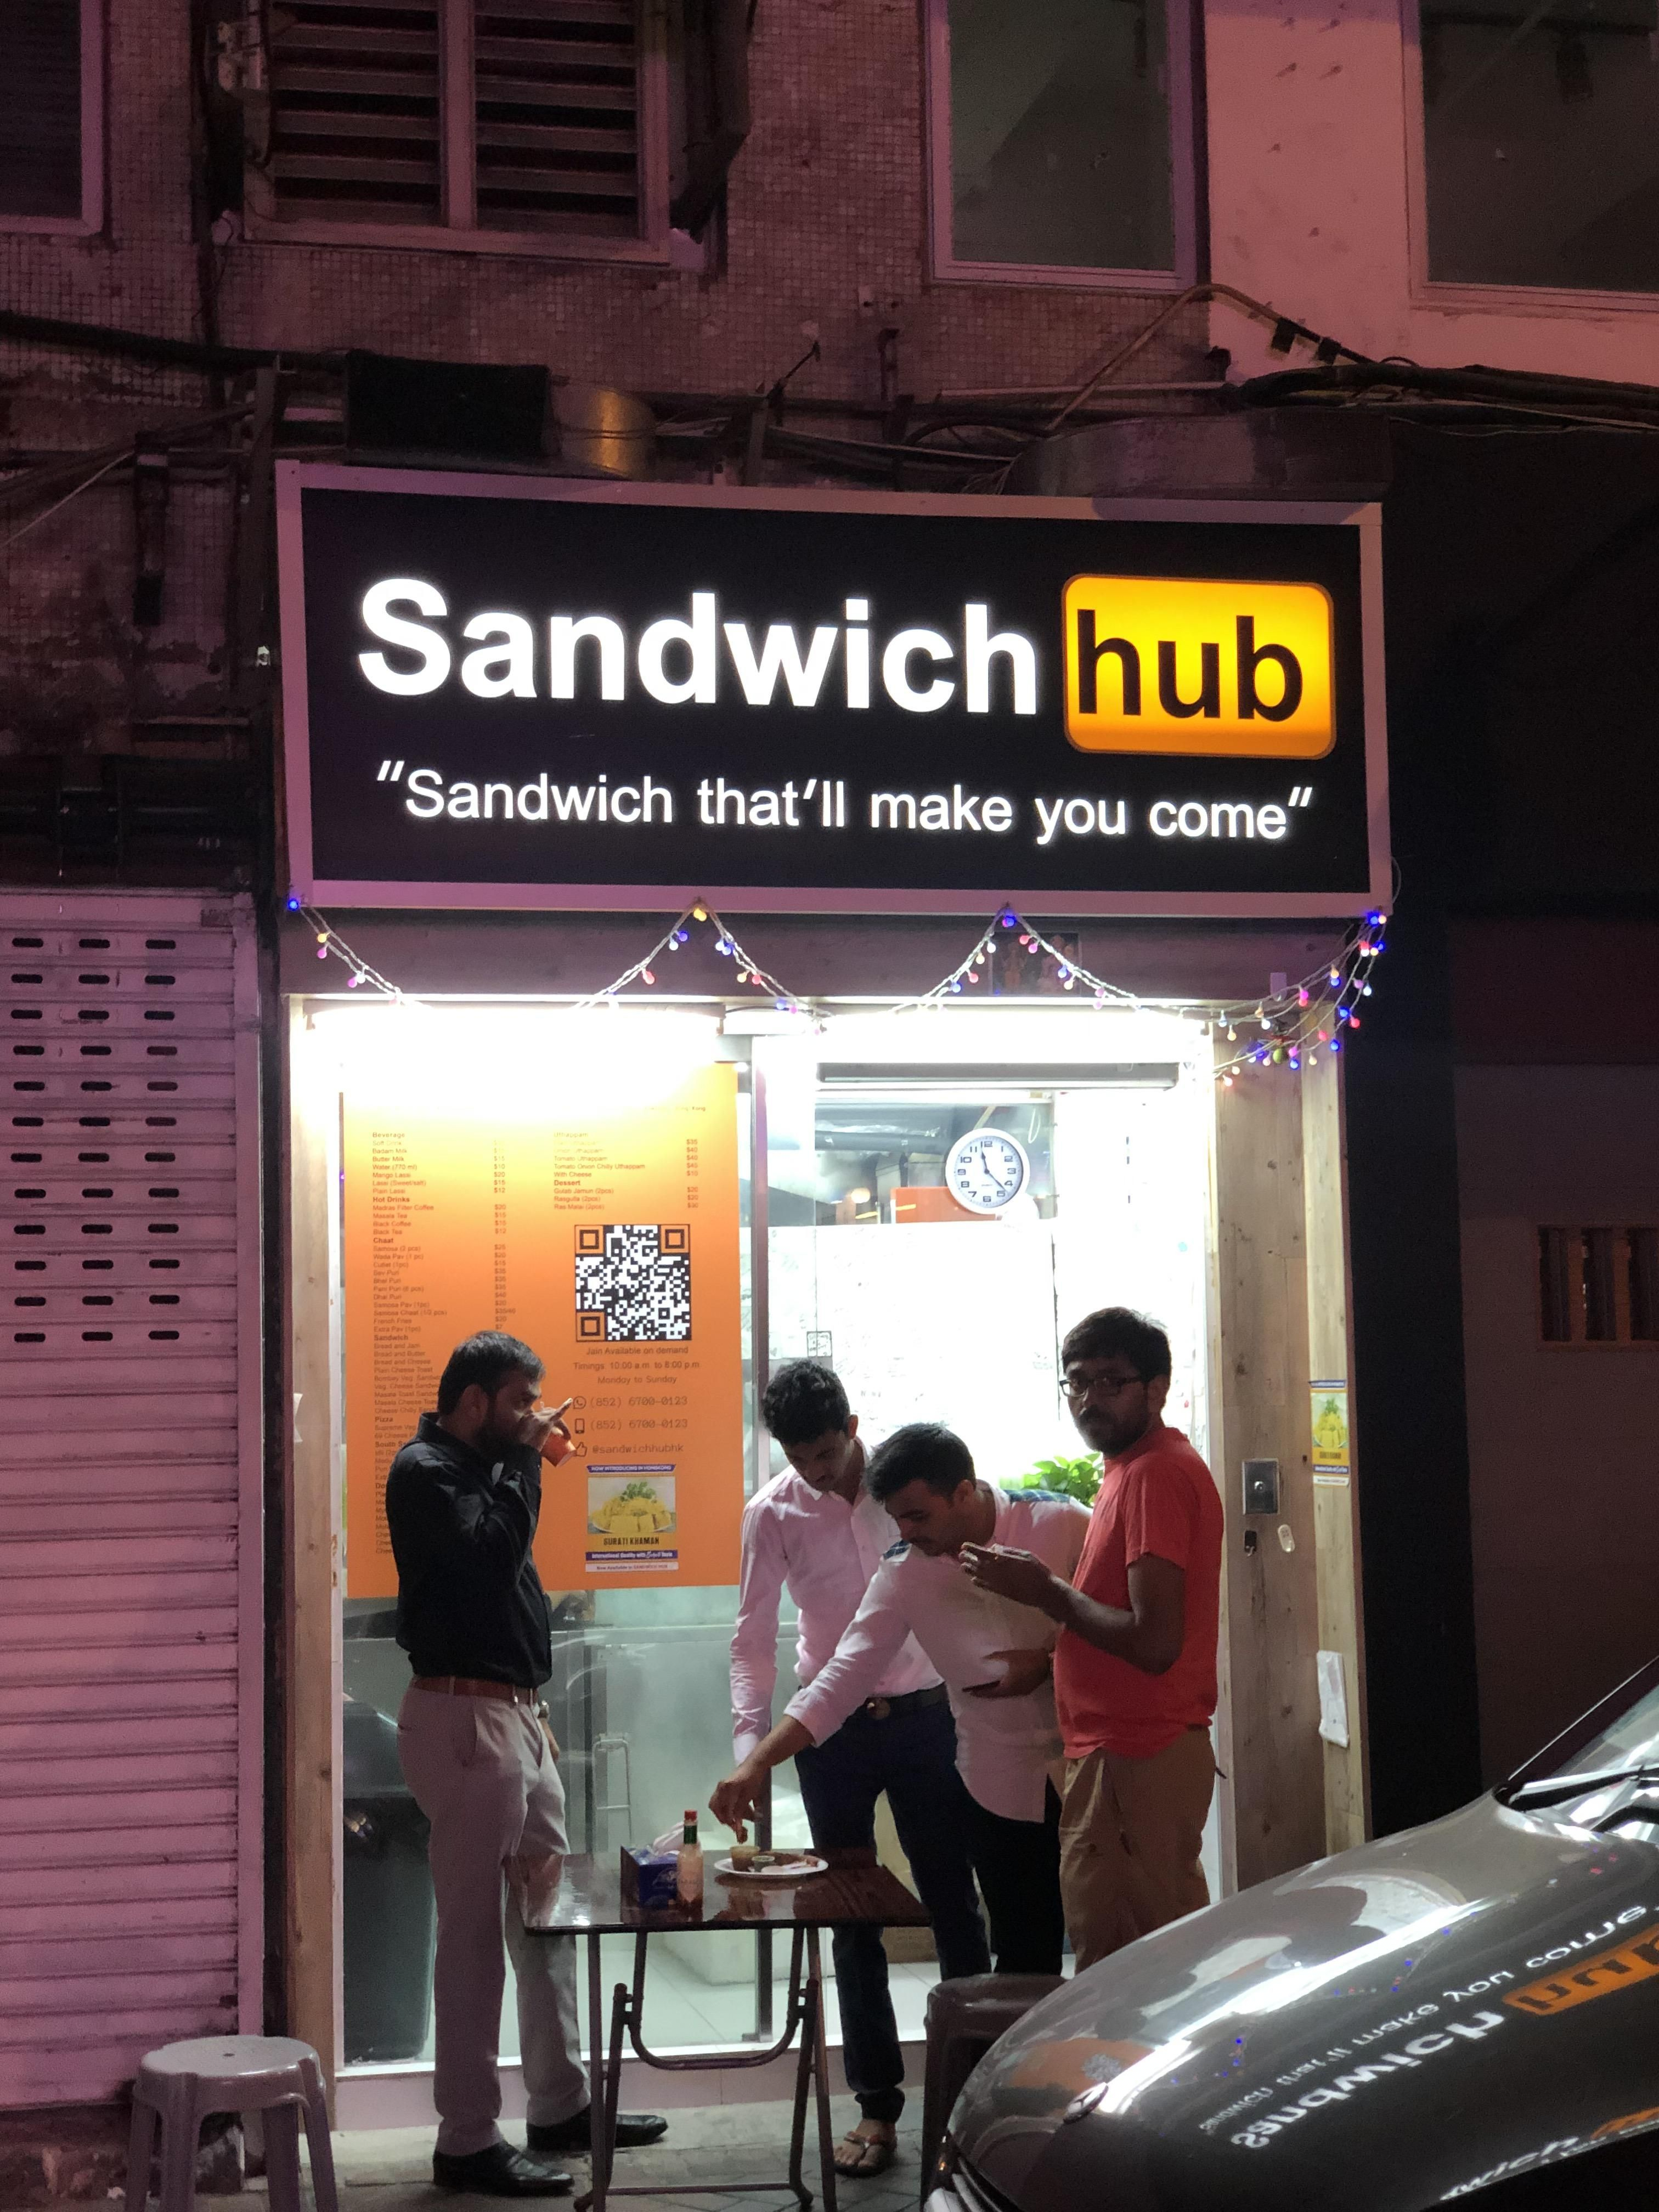 Sandwhich that'll make you come